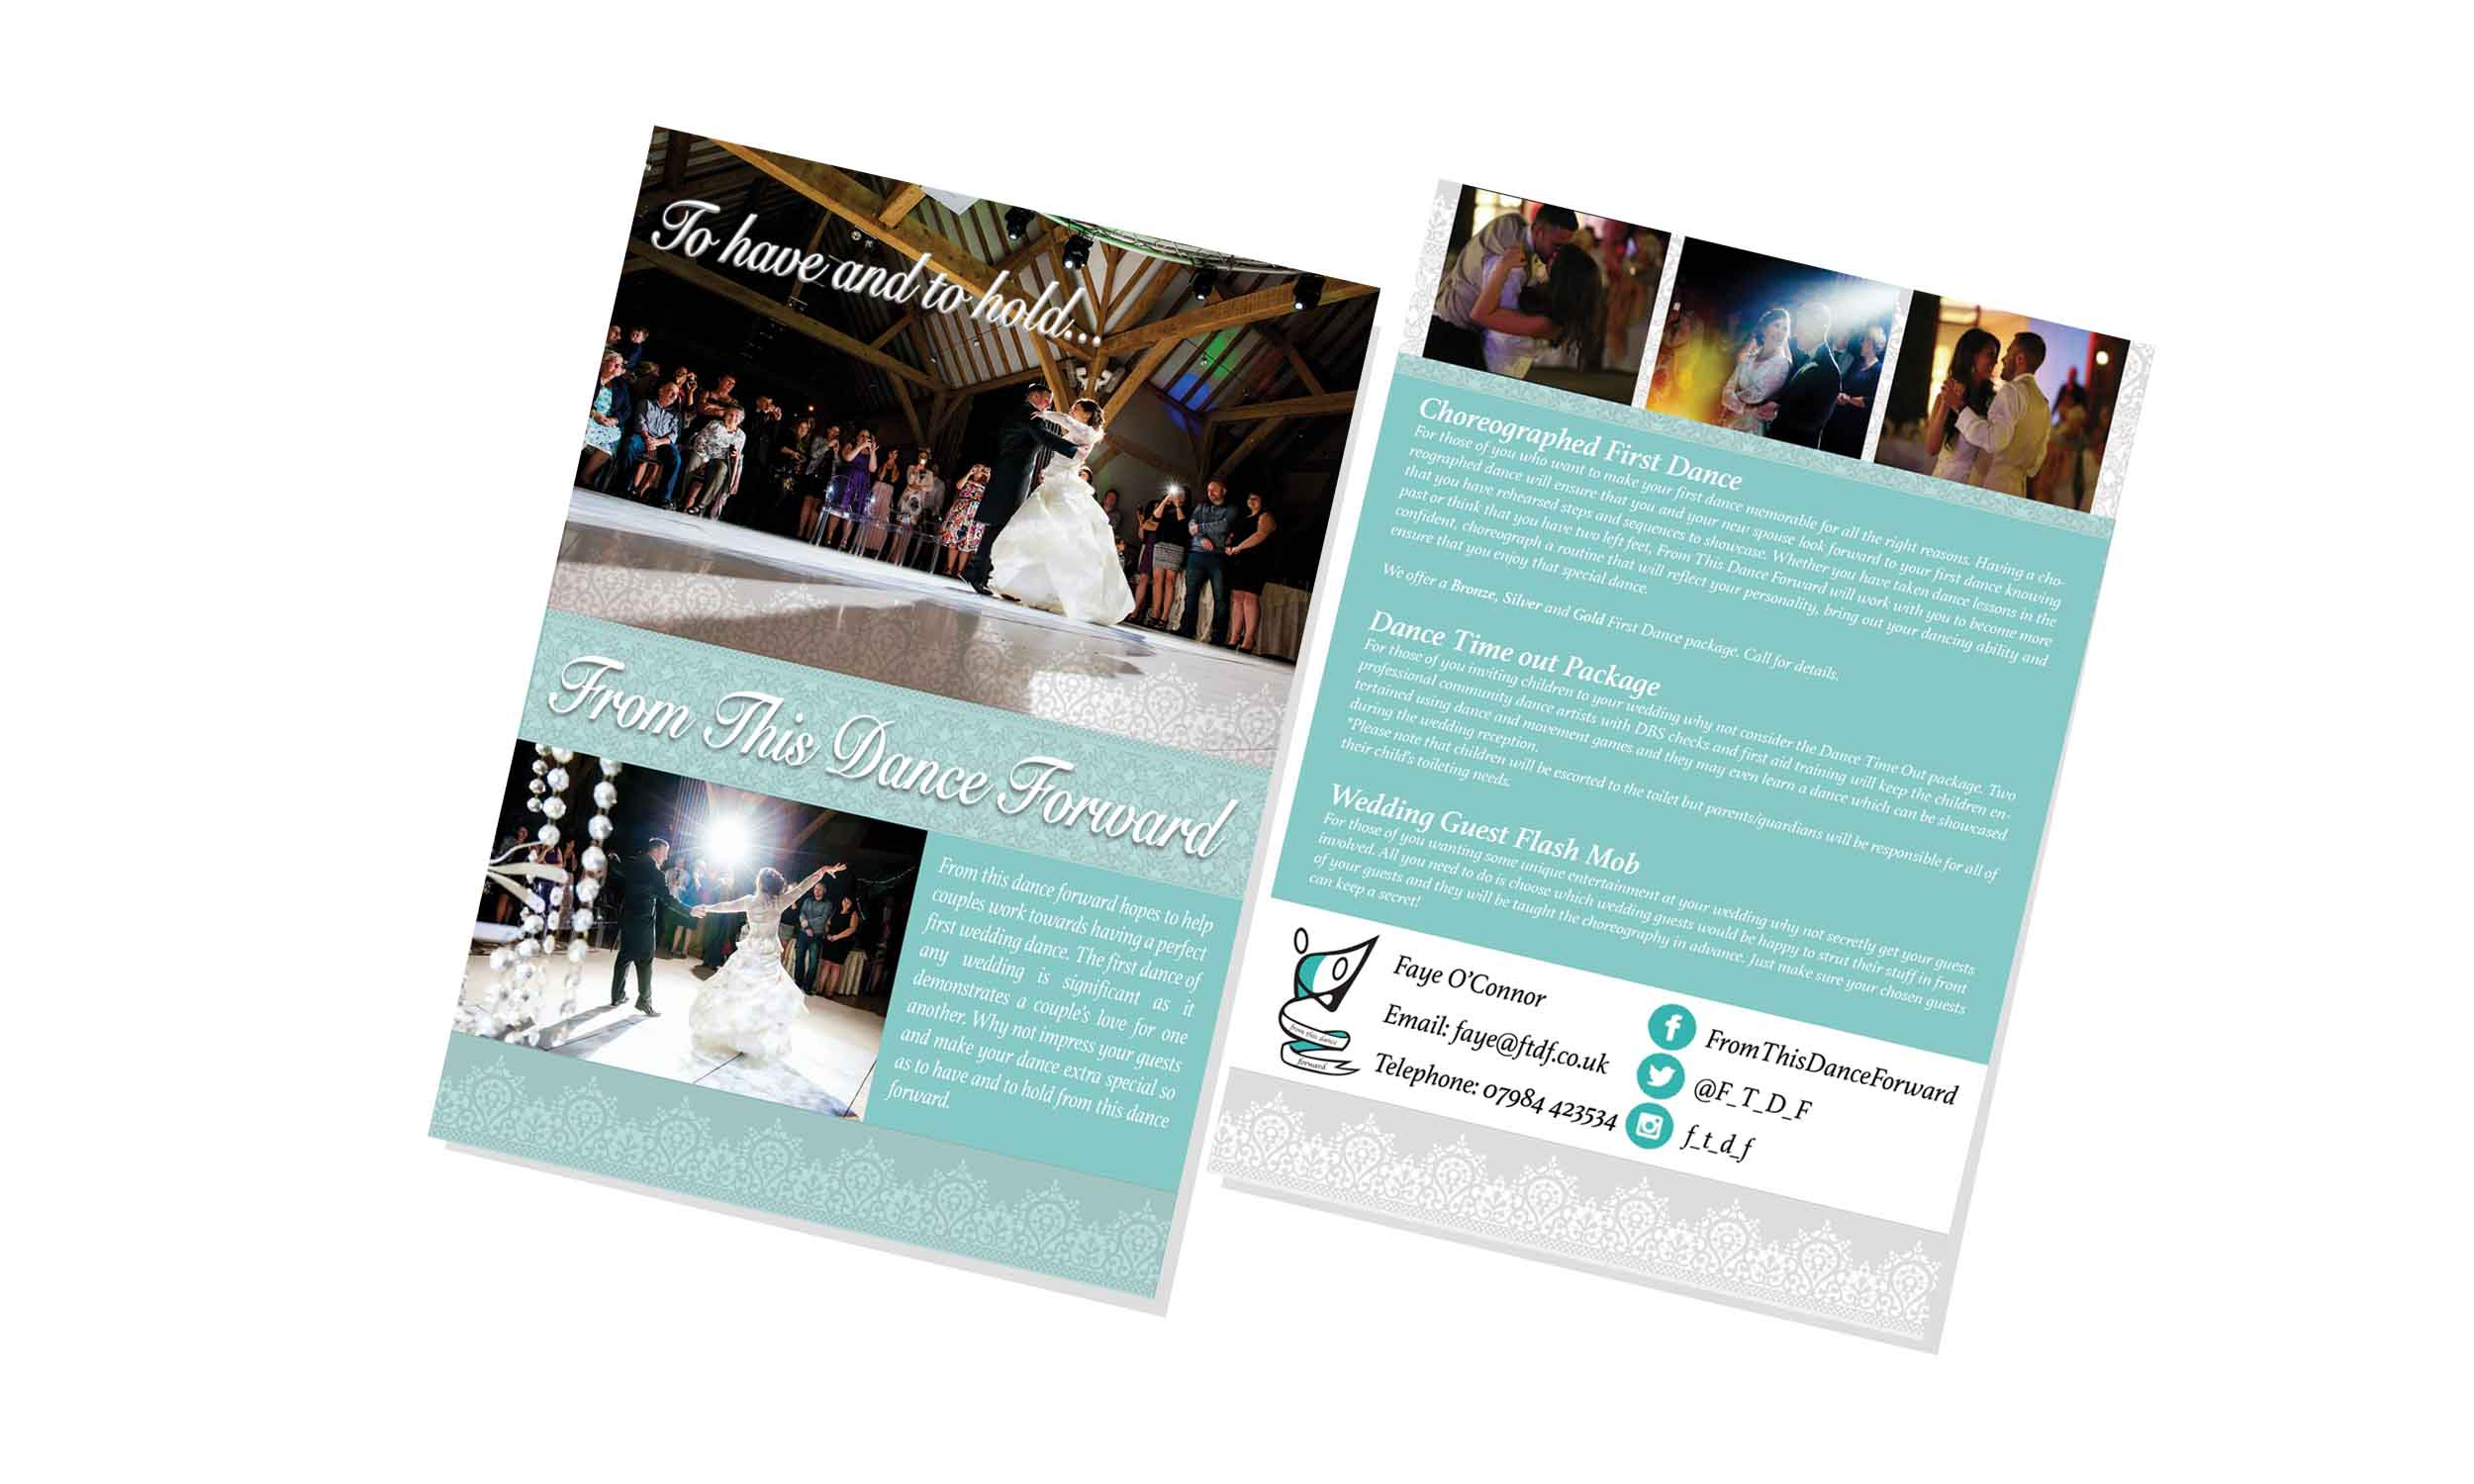 From This Dance Forward Leaflets